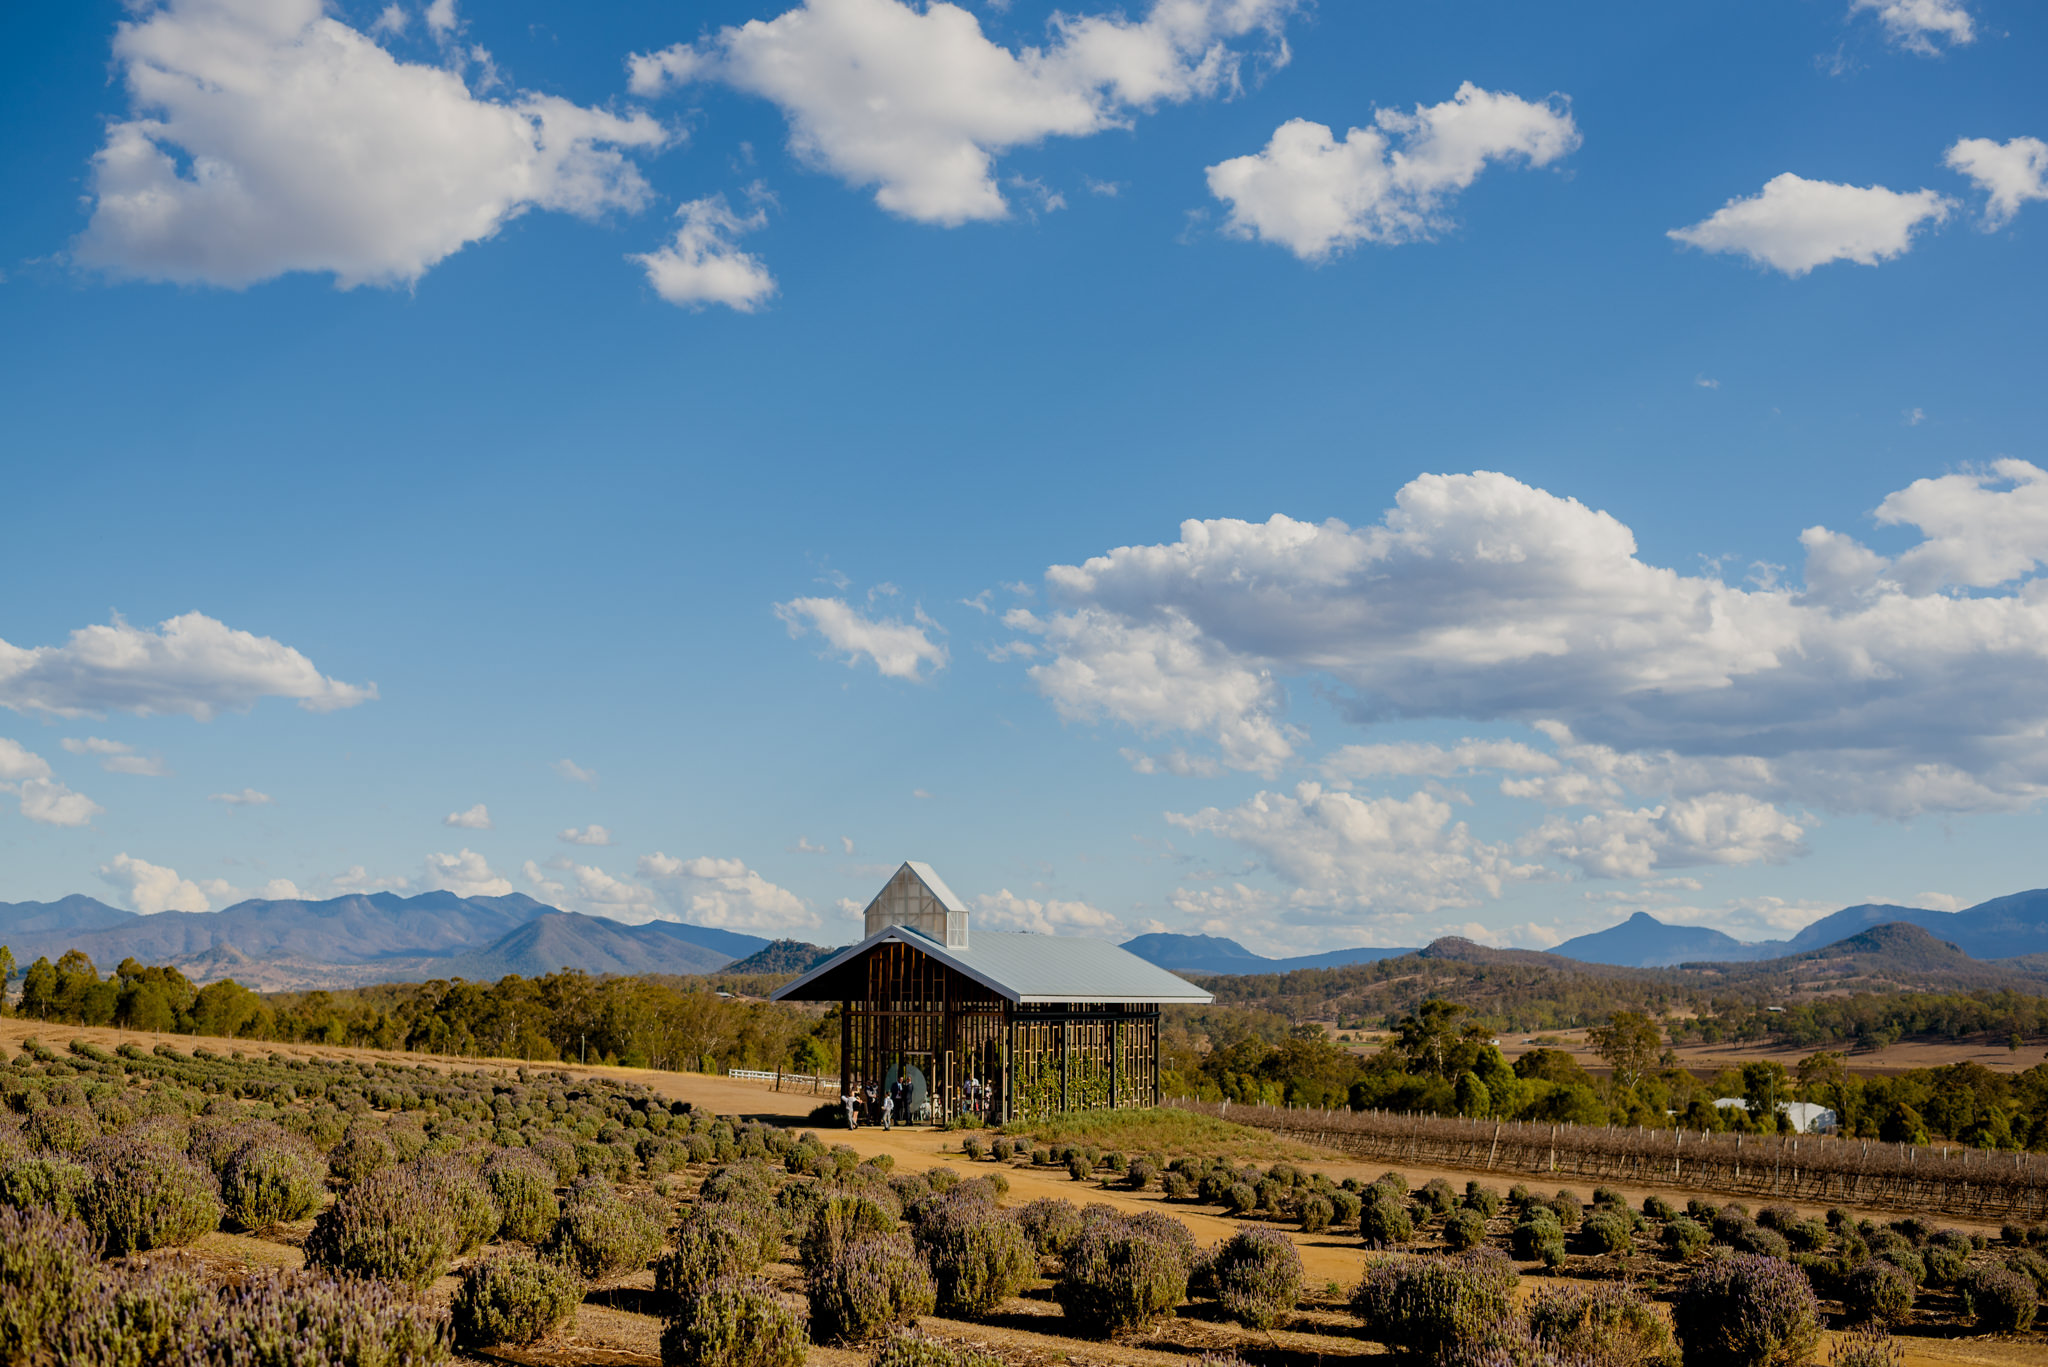 Small wooden chapel in a lavender farm under a blue sky with mountains in the background